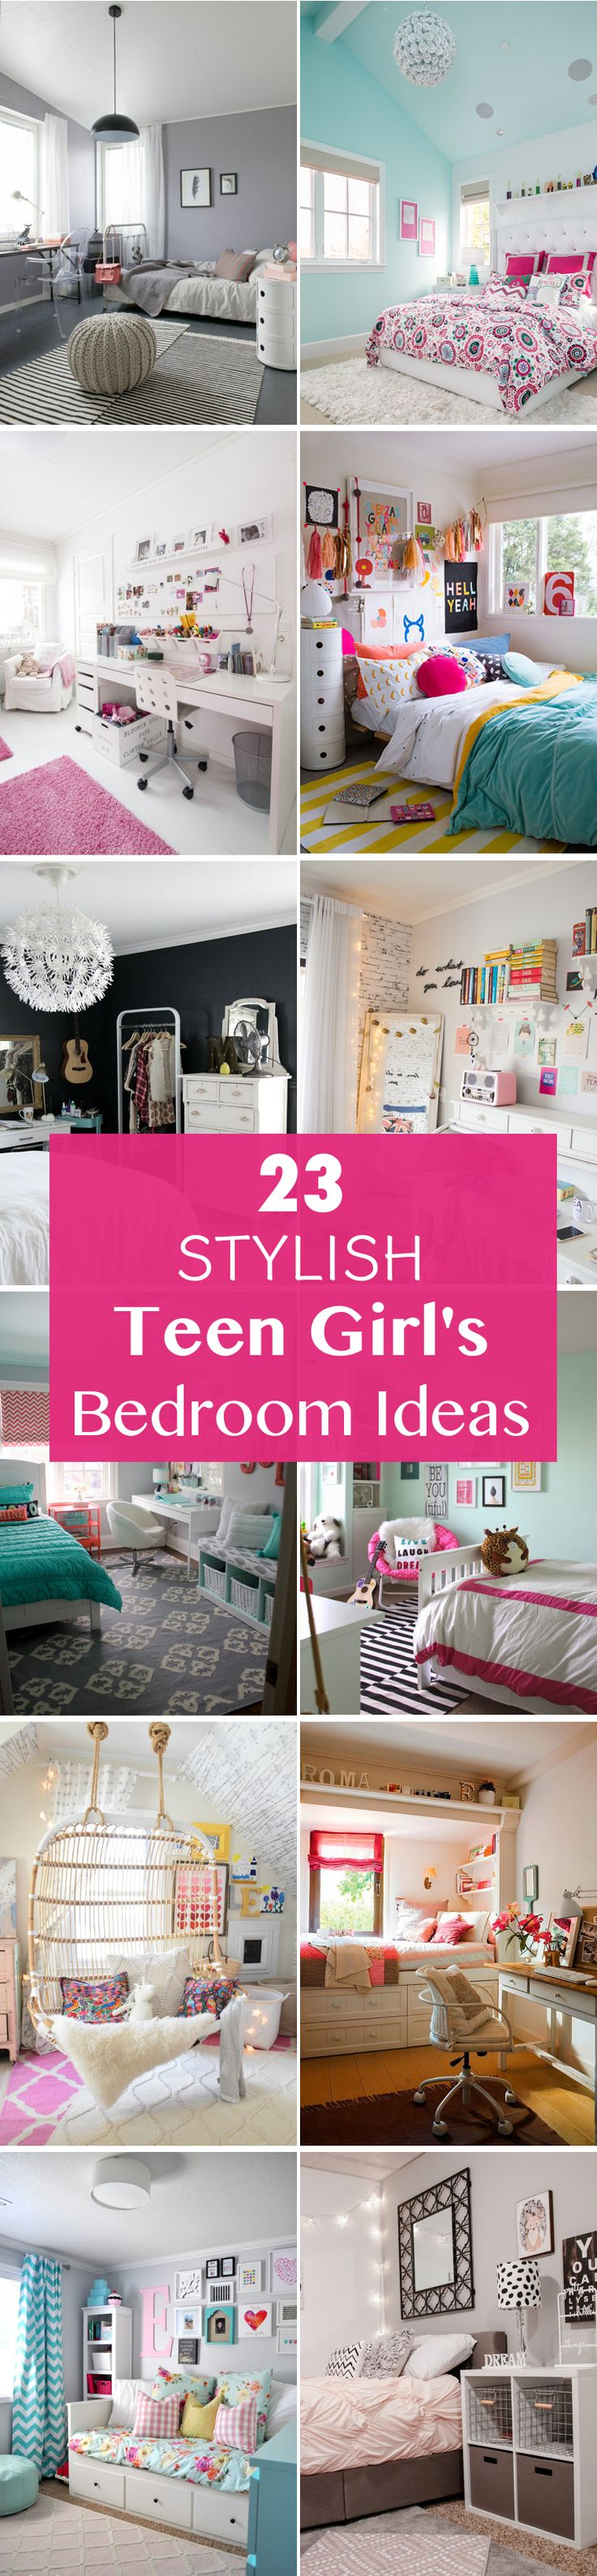 23 Stylish Teen Girl s Bedroom Ideas. Best 25  Teen bedroom ideas on Pinterest